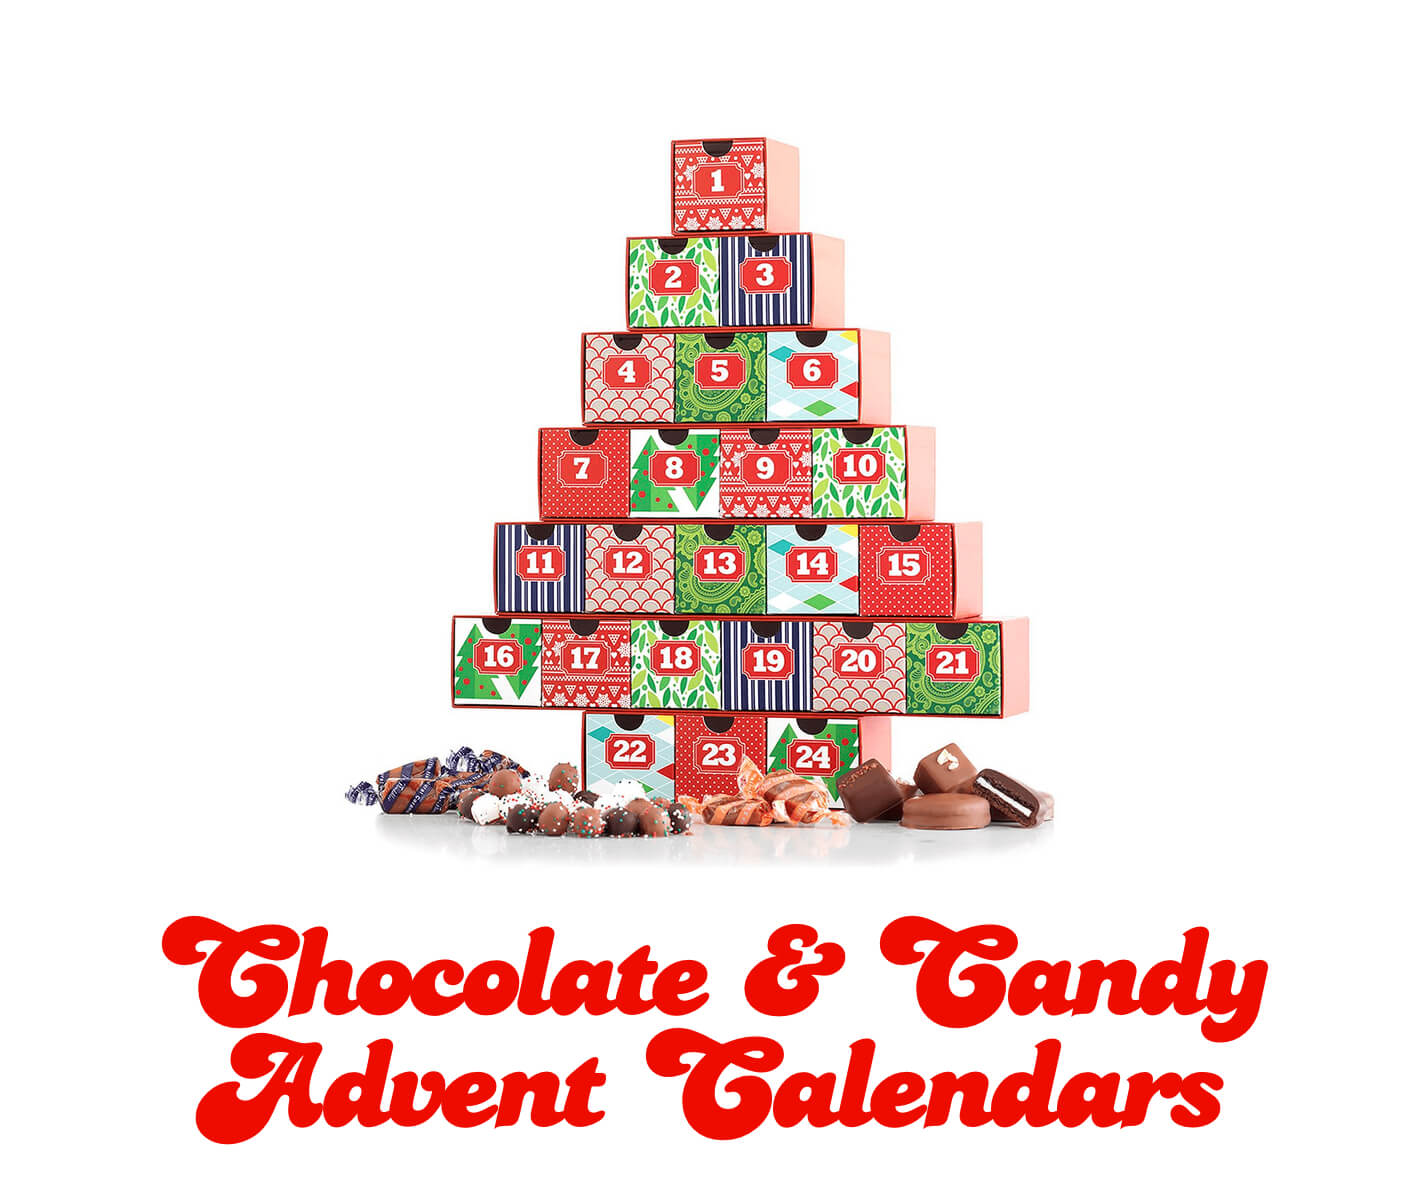 chocolate & candy advent calendars 2016